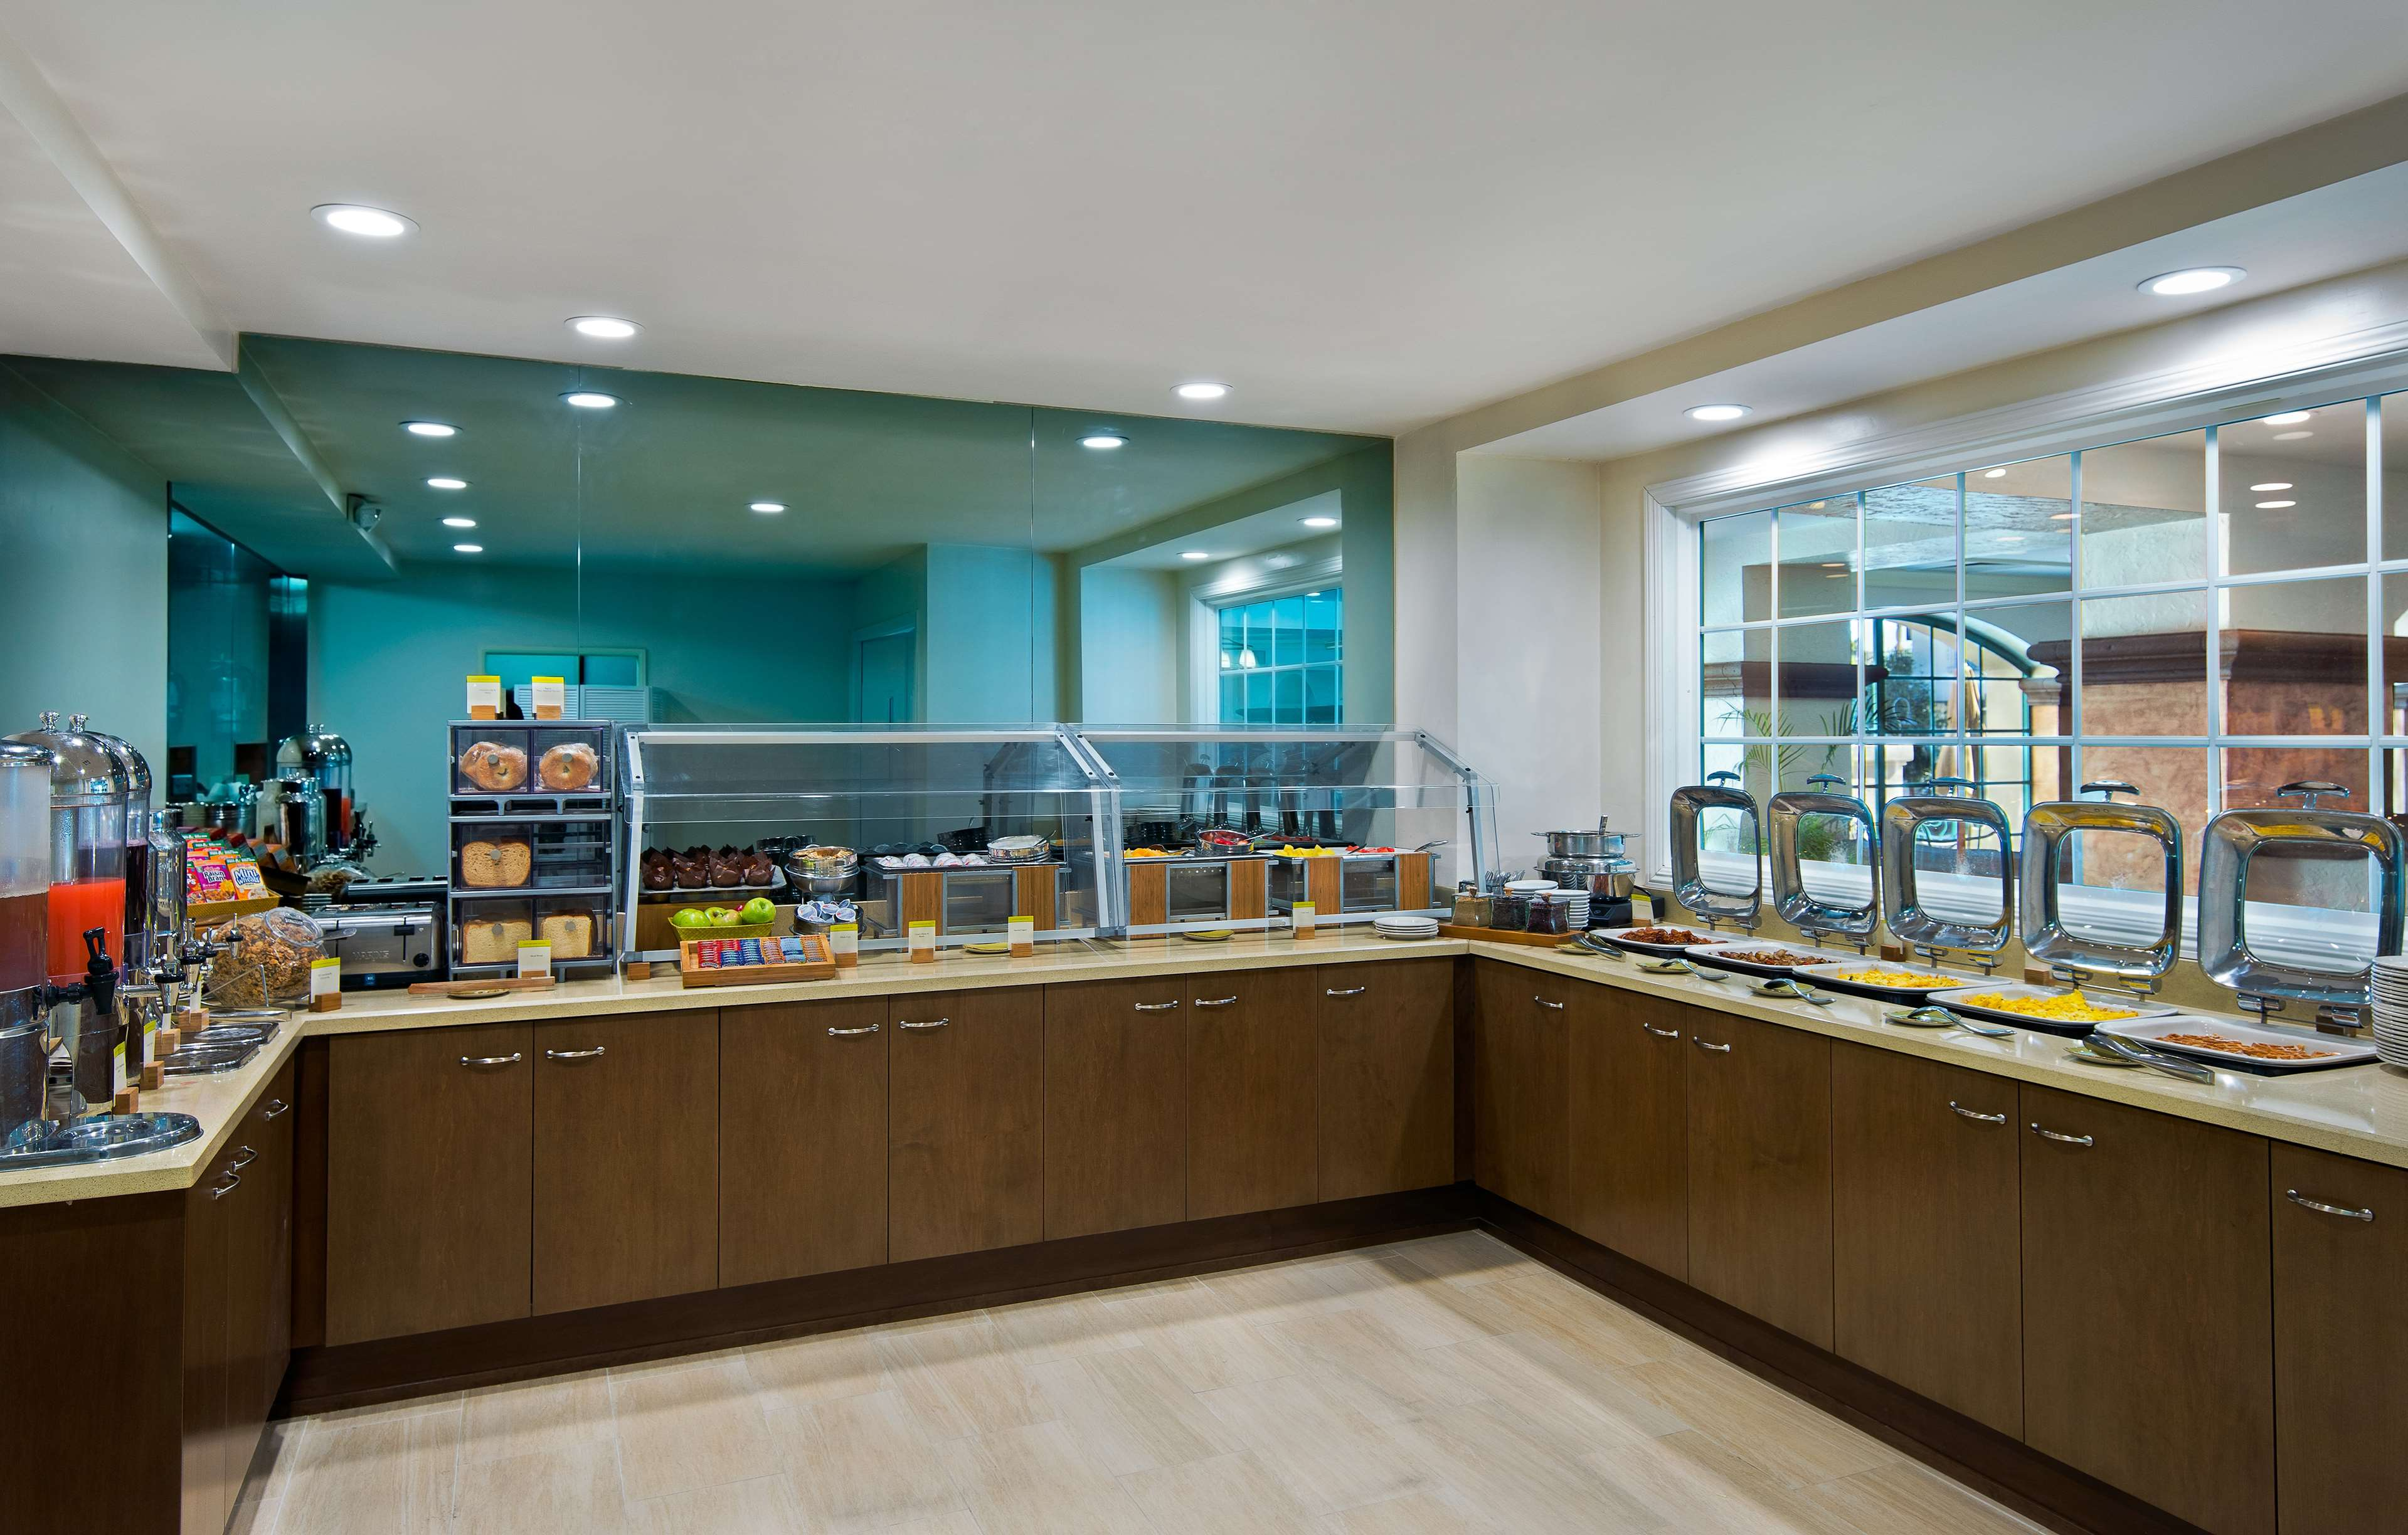 DoubleTree by Hilton Hotel San Pedro - Port of Los Angeles image 10